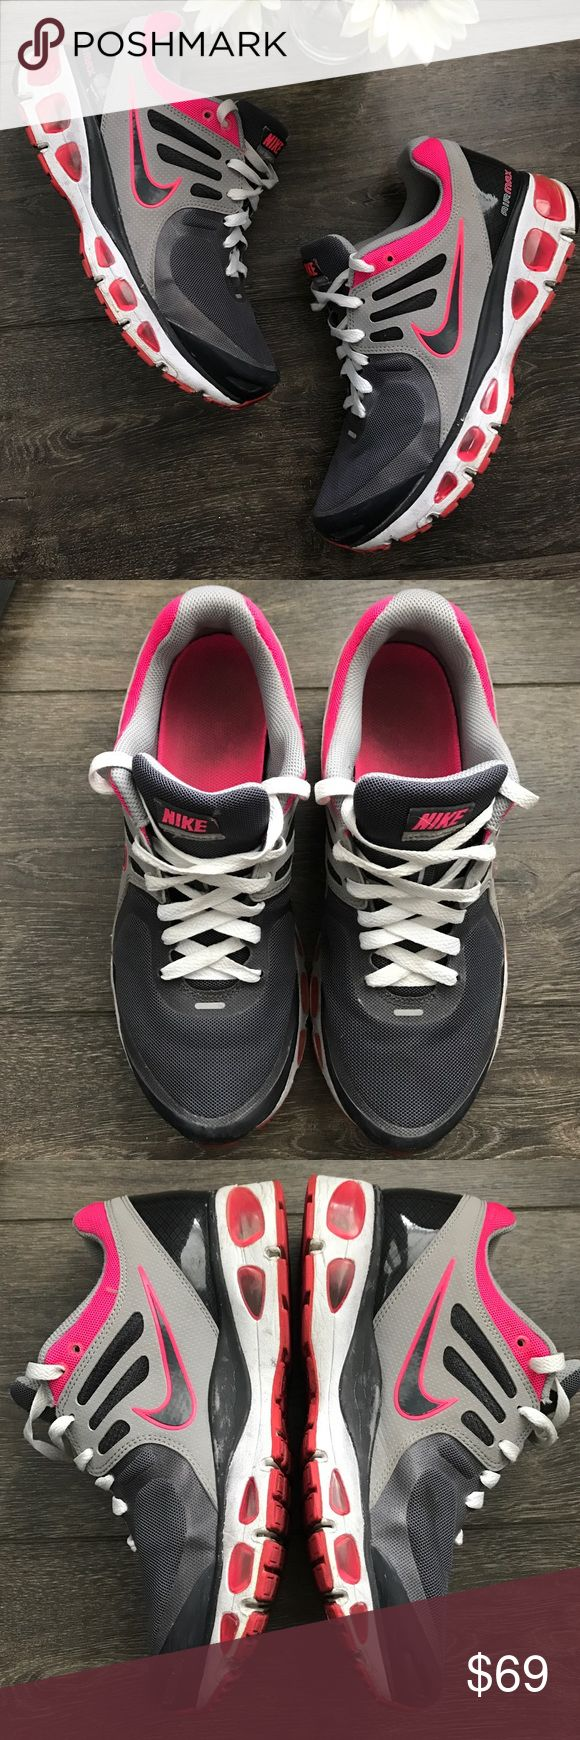 Nike Air Tailwind +2 sneakers in pink & grey GUC - show signs of wear on inner soles, outer and bottoms, but no rips, tears or major issues, still lots of wear left Nike Shoes Athletic Shoes